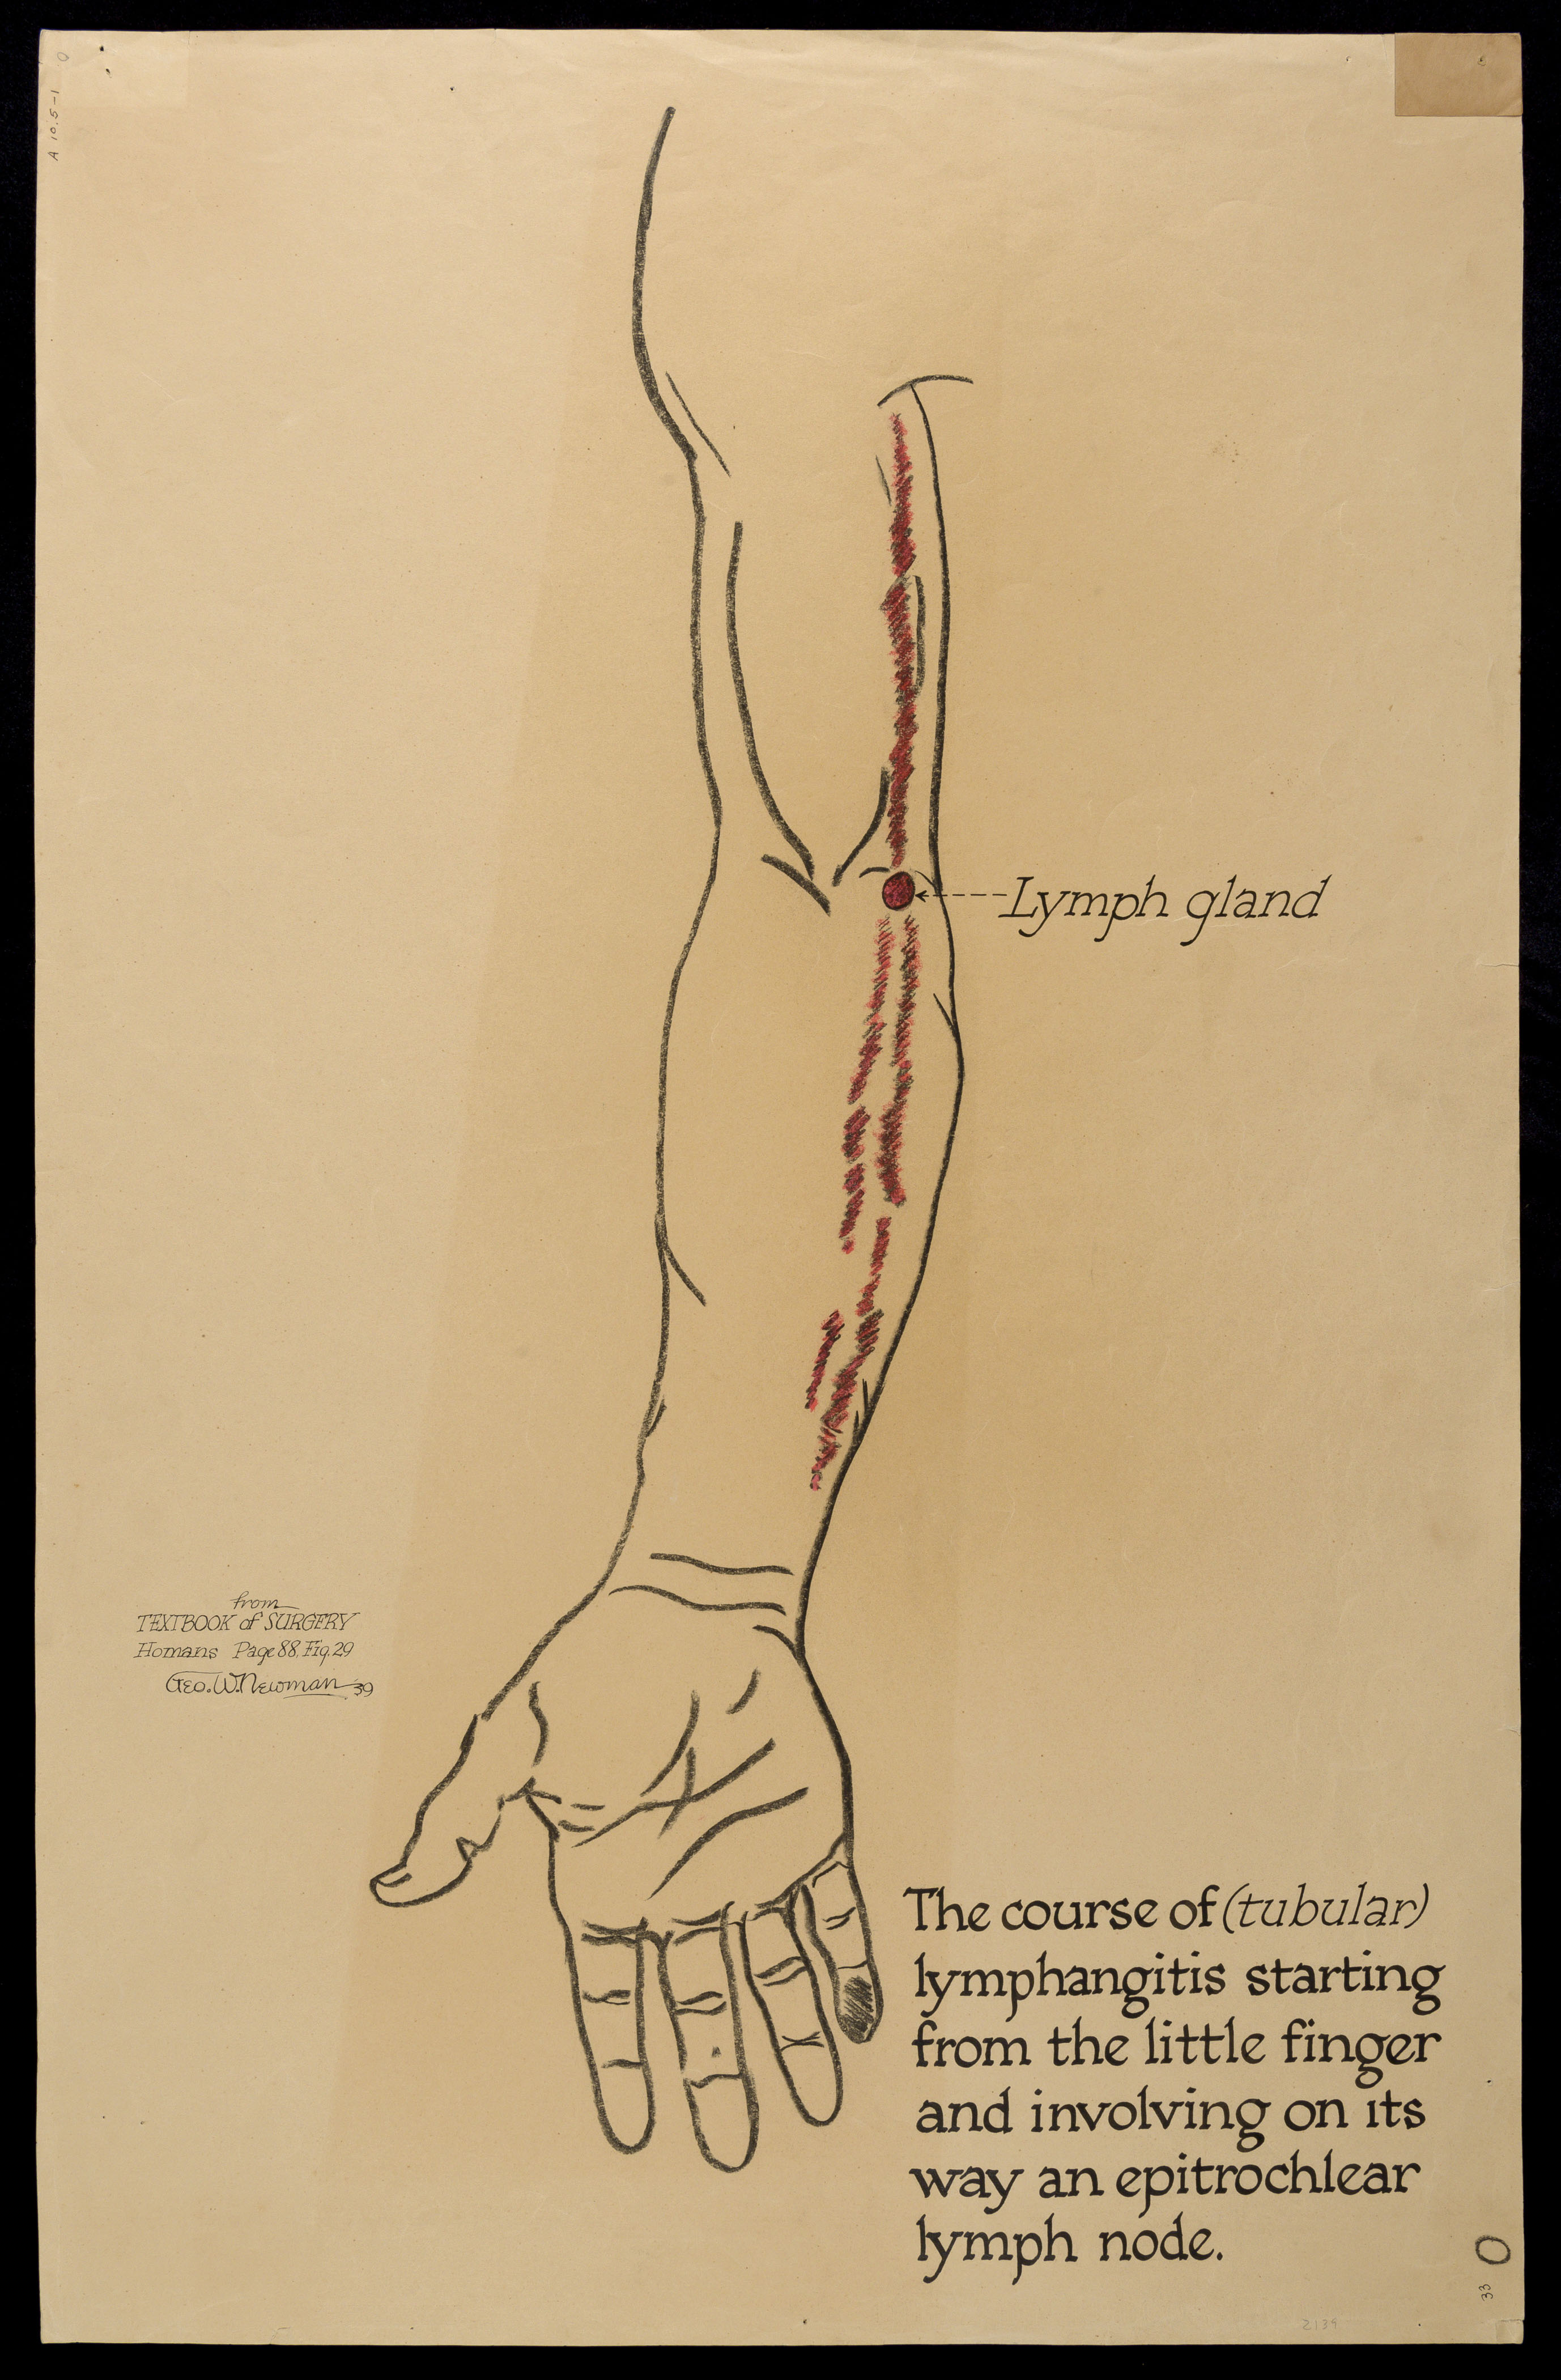 The Course Of Tubular Lymphangitis Starting From The Little Finger